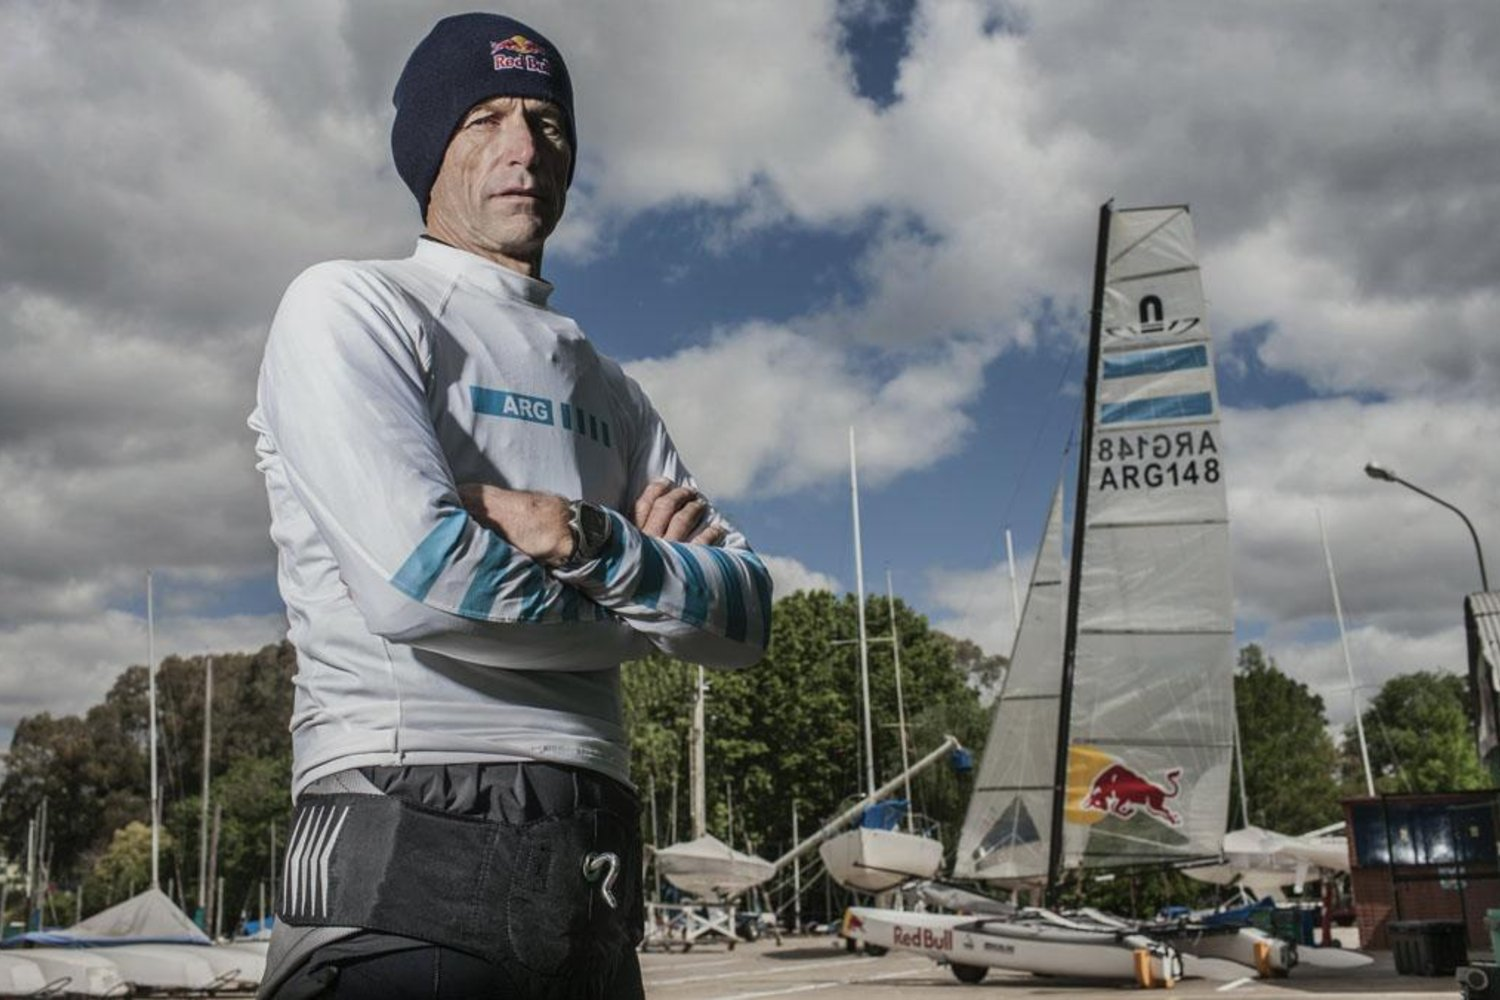 Santiago Lange poses for a portrait at Club Nautico San Isidro in Buenos Aires, Argentina on October 10th, 2014 // Gustavo Cherro/Red Bull Content Pool // P-20141014-00460 // Usage for editorial use only // Please go to www.redbullcontentpool.com for further information. //